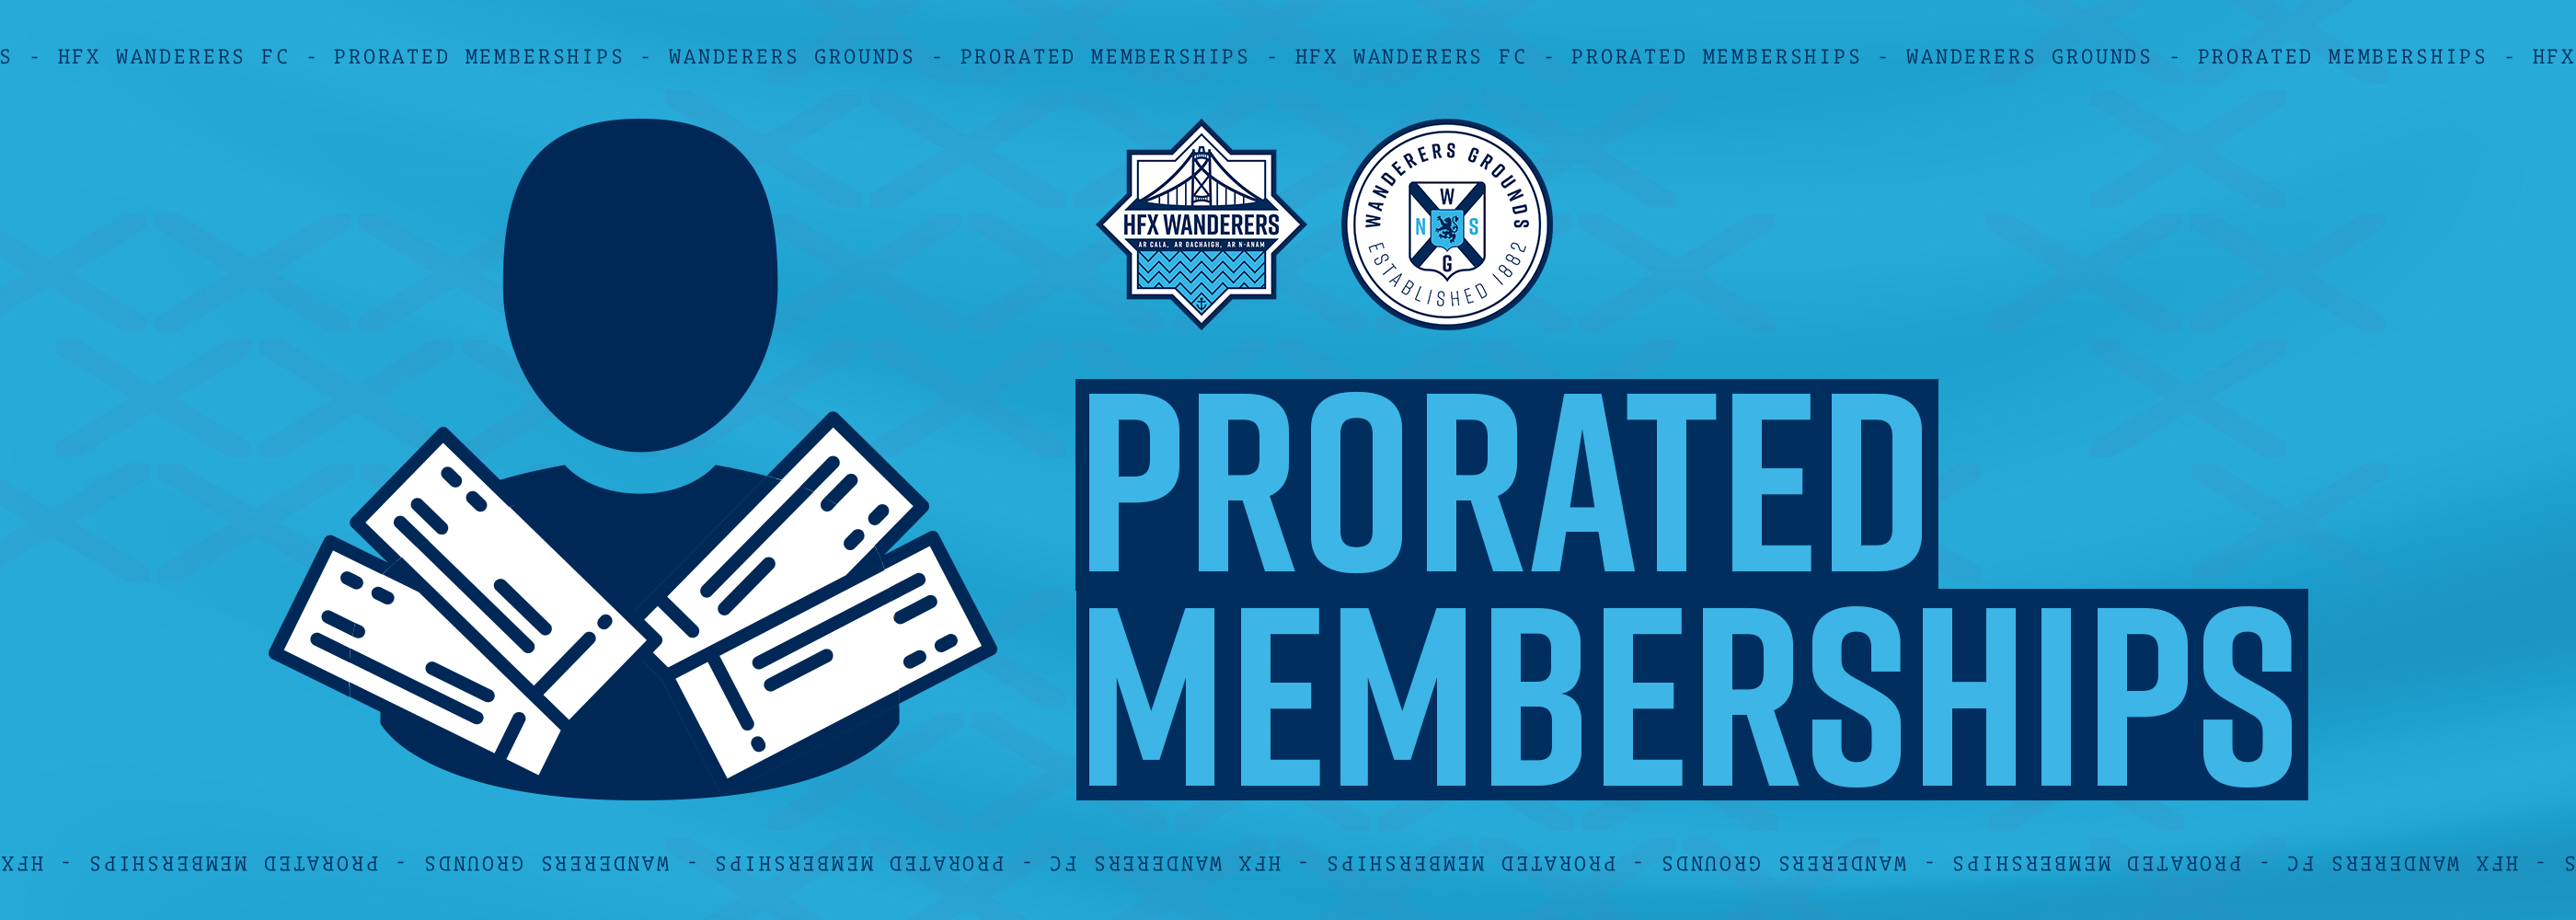 prorated_featured